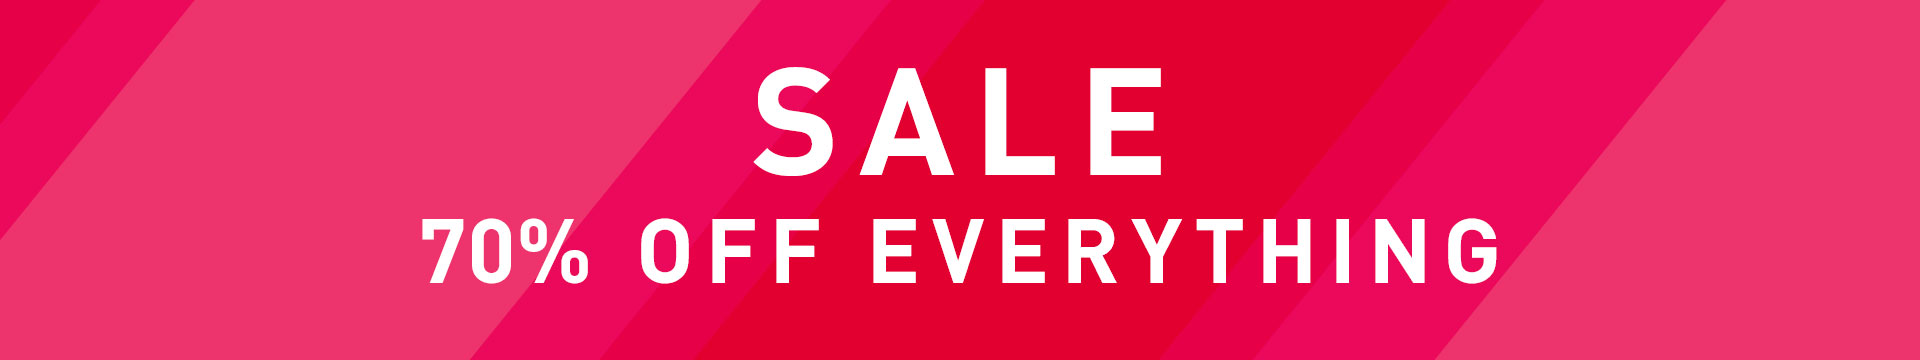 Sale -70% off everything